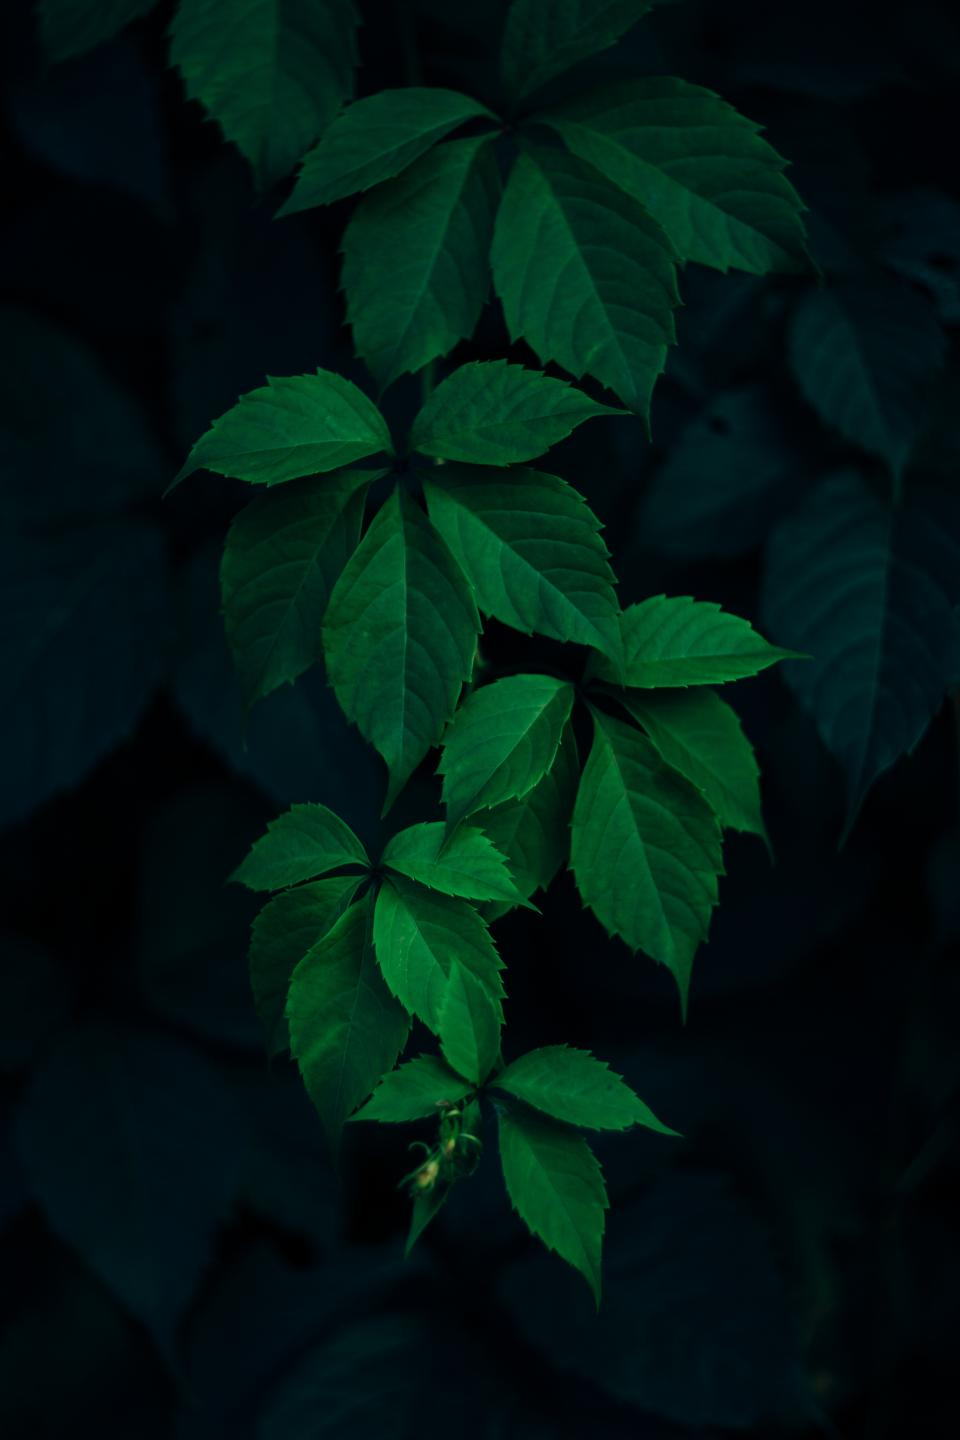 green leaf dark plant blur nature